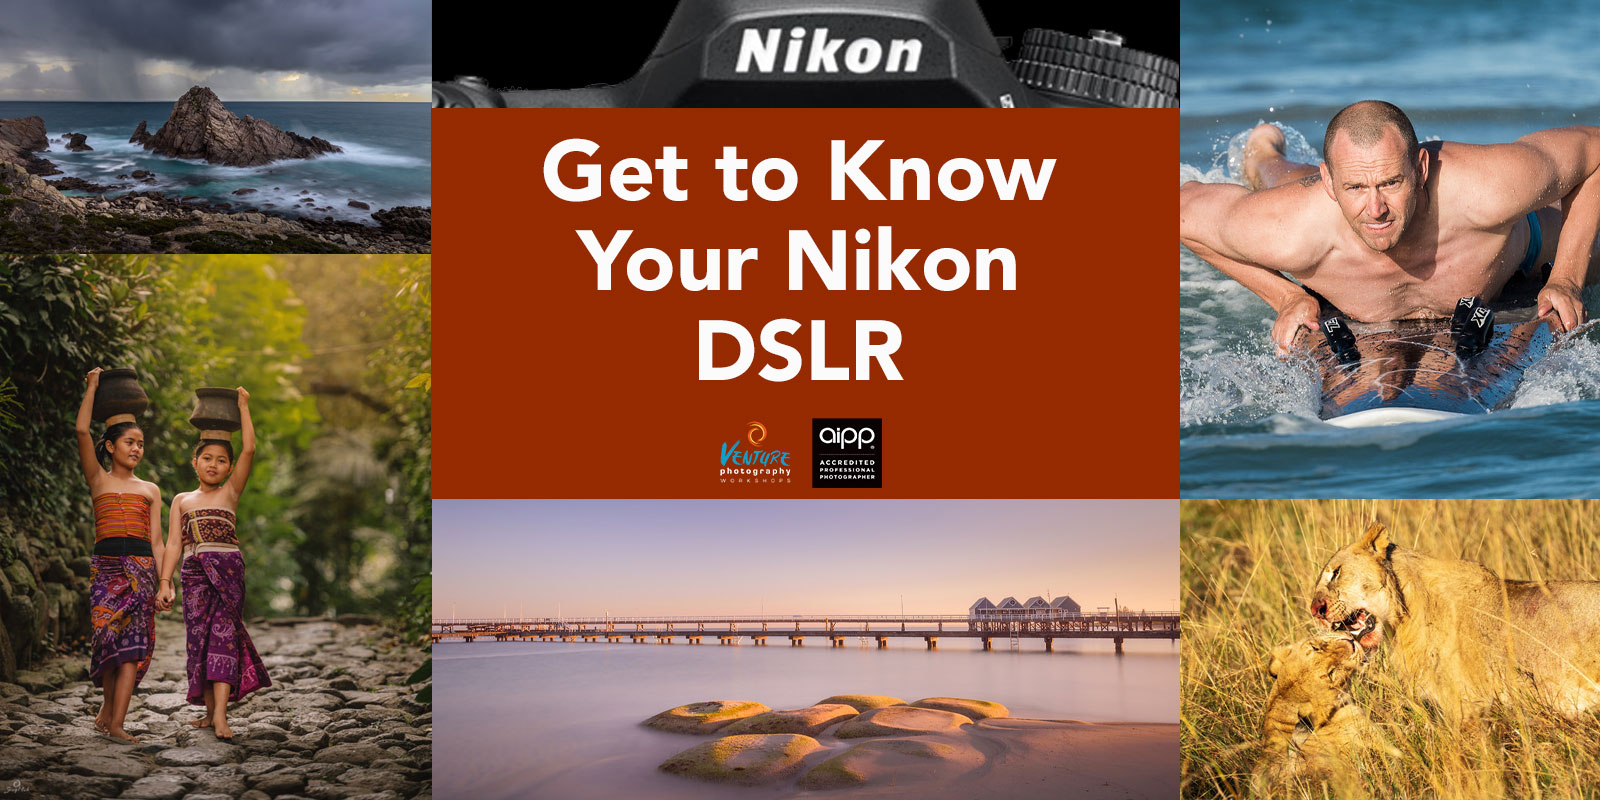 Get to Know Your Nikon DSLR